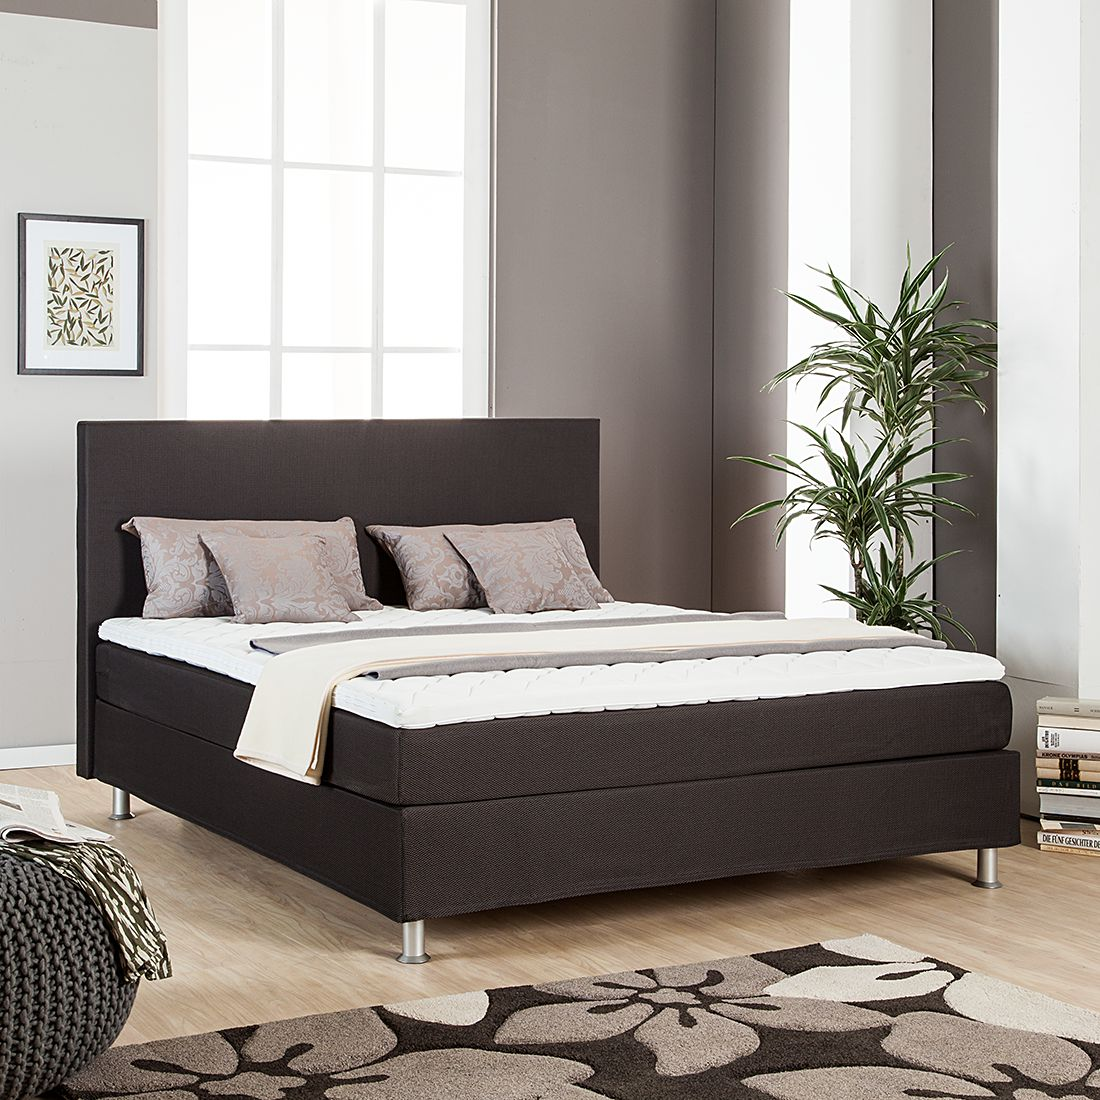 boxspringbett judith von nuovoform 180x200cm nur 599 99 cherry m bel home24. Black Bedroom Furniture Sets. Home Design Ideas